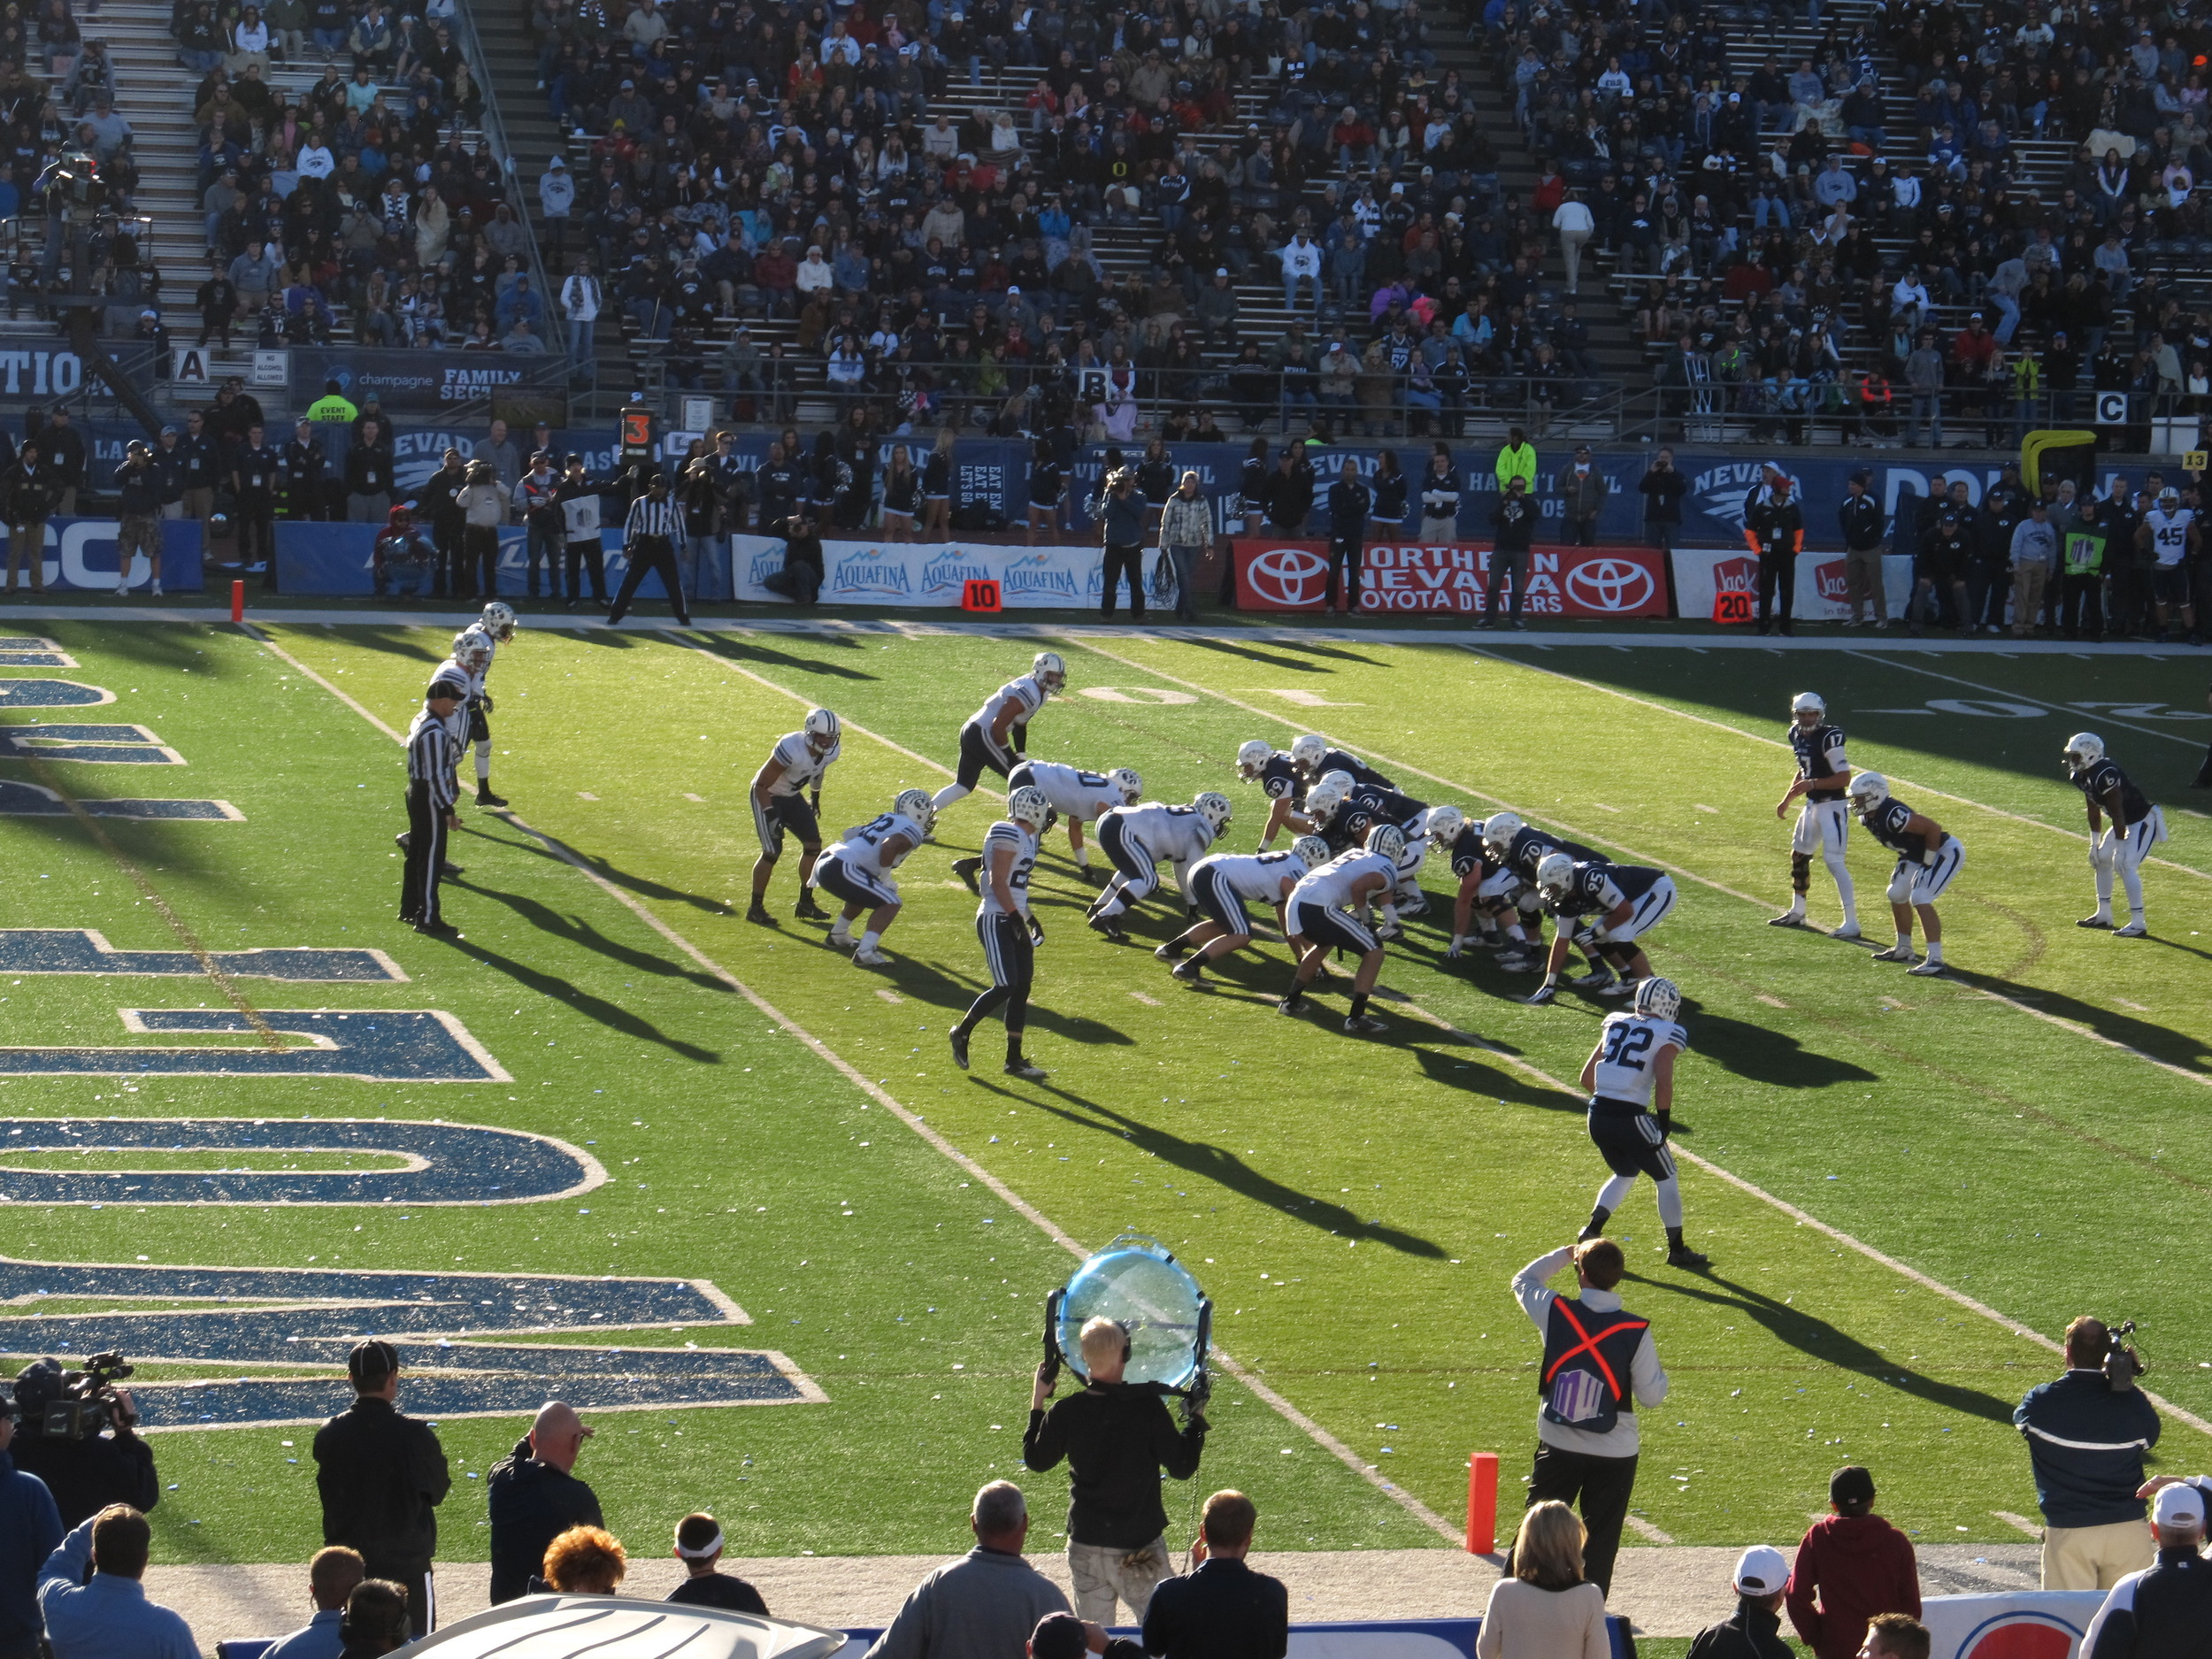 Mackay Stadium, University of Nevada, Reno, Nevada